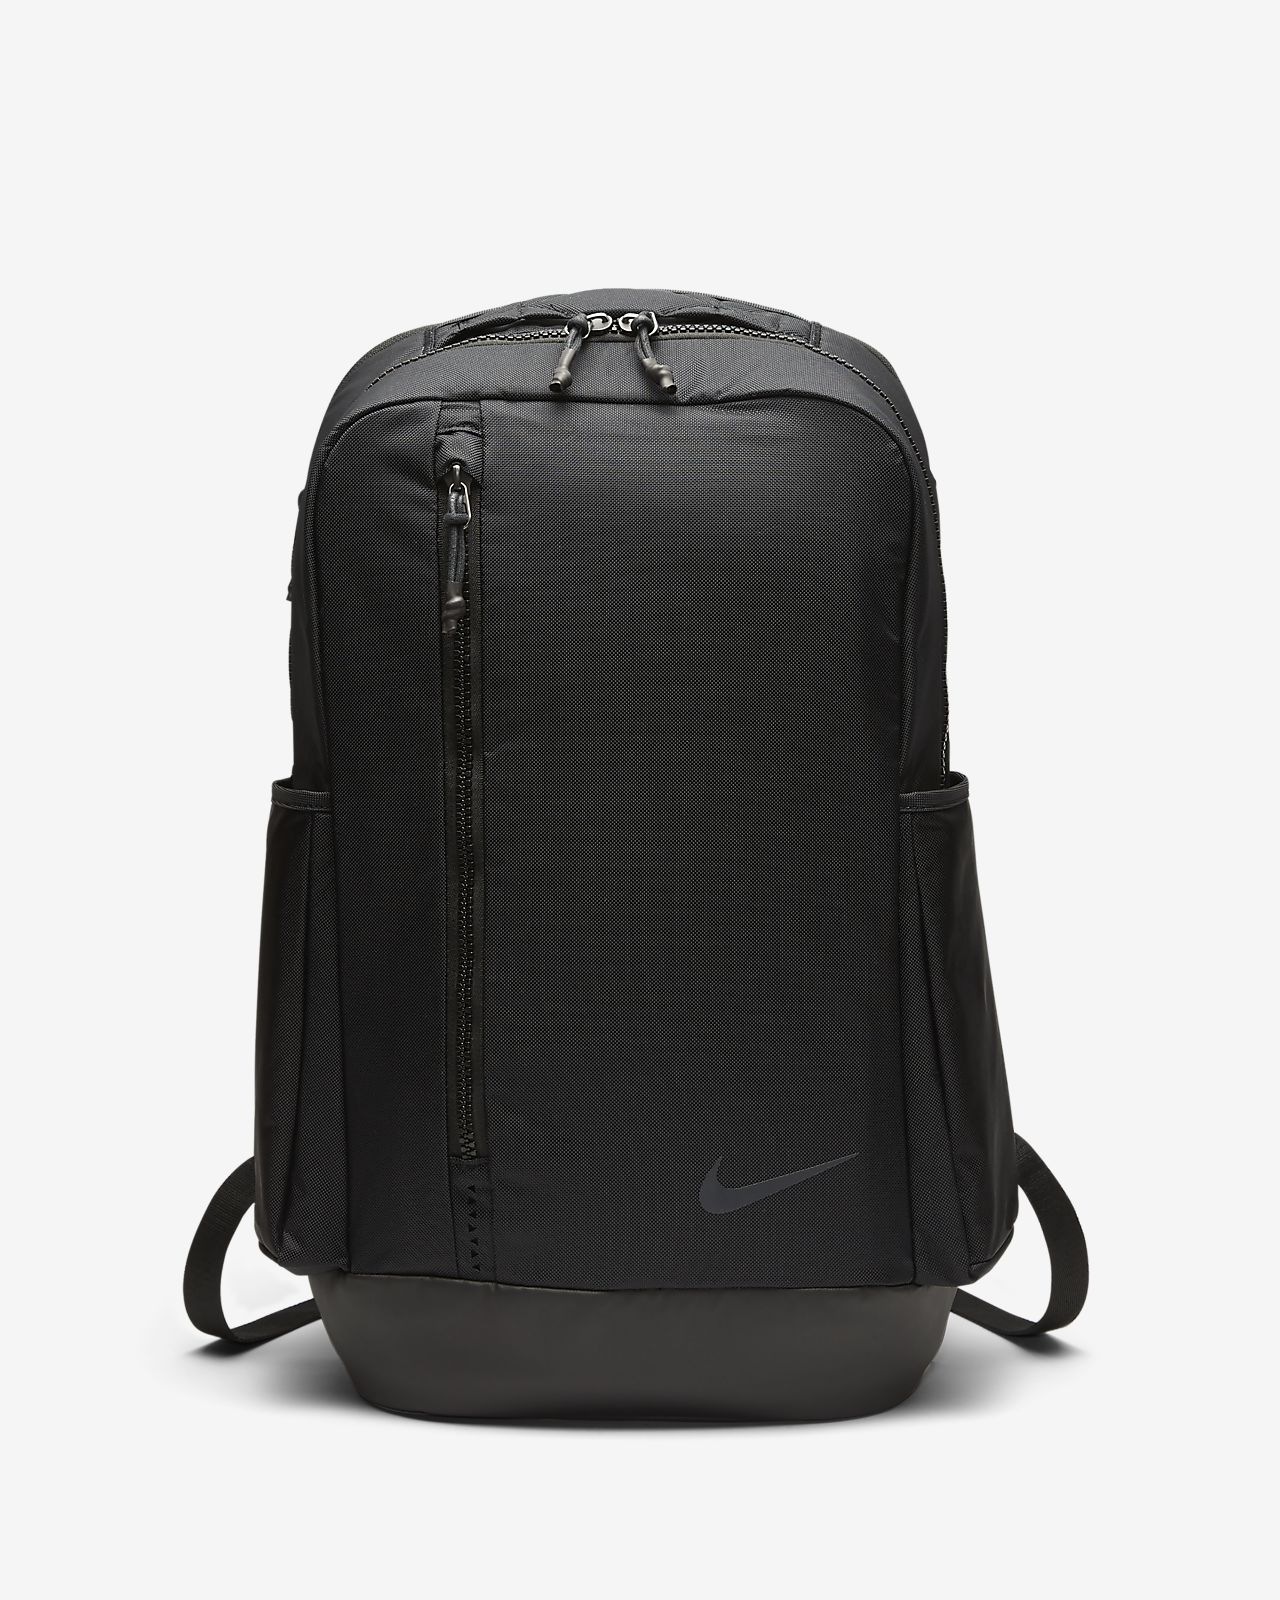 721ca9d7b8a3 Nike Vapor Power 2.0 Training Backpack. Nike.com AU